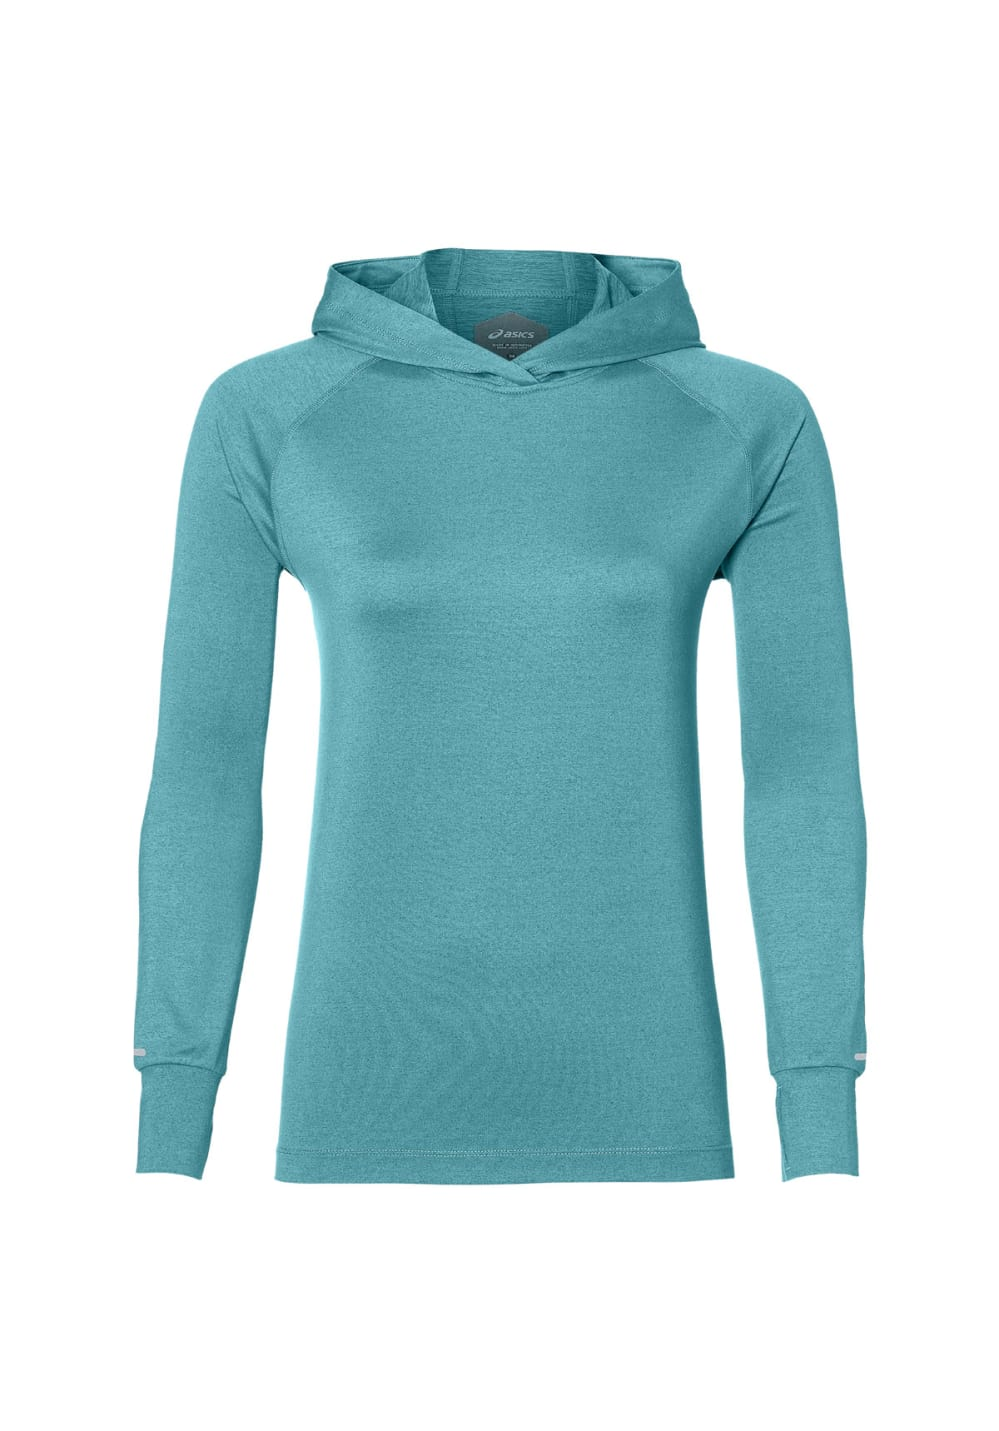 hot-selling real professional website pretty and colorful ASICS Thermopolis Hoodie - Sweatshirts / Hoodies for Women - Blue